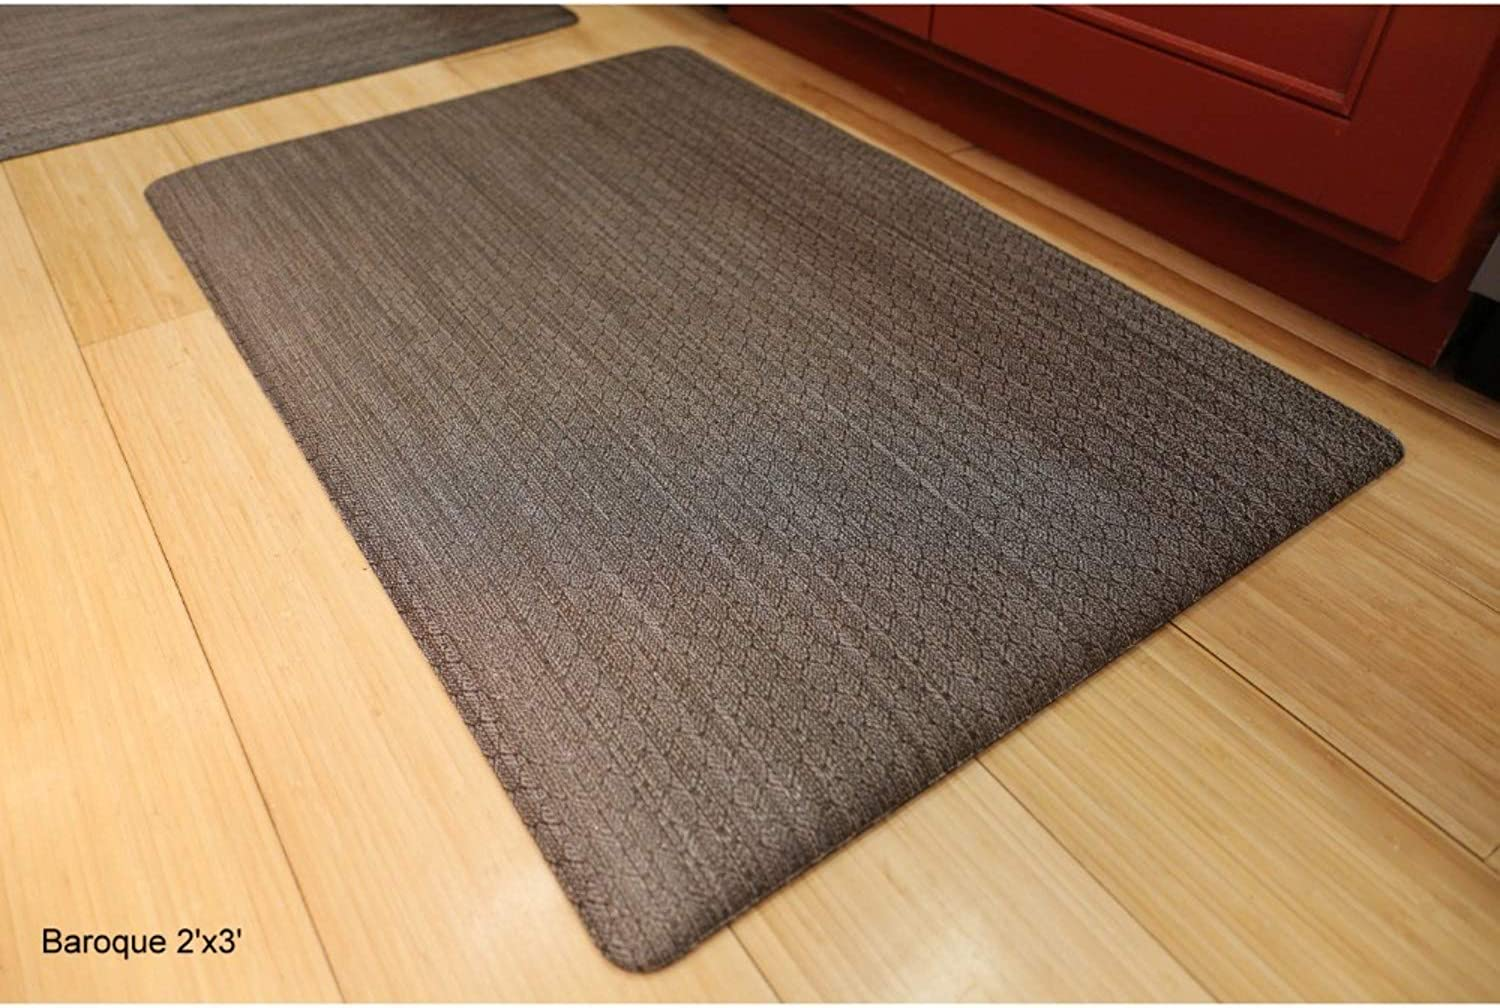 Mats Inc. Luxe Therapeutic Ultra Cushioned Floor Mat, 2' x 3', Baroque